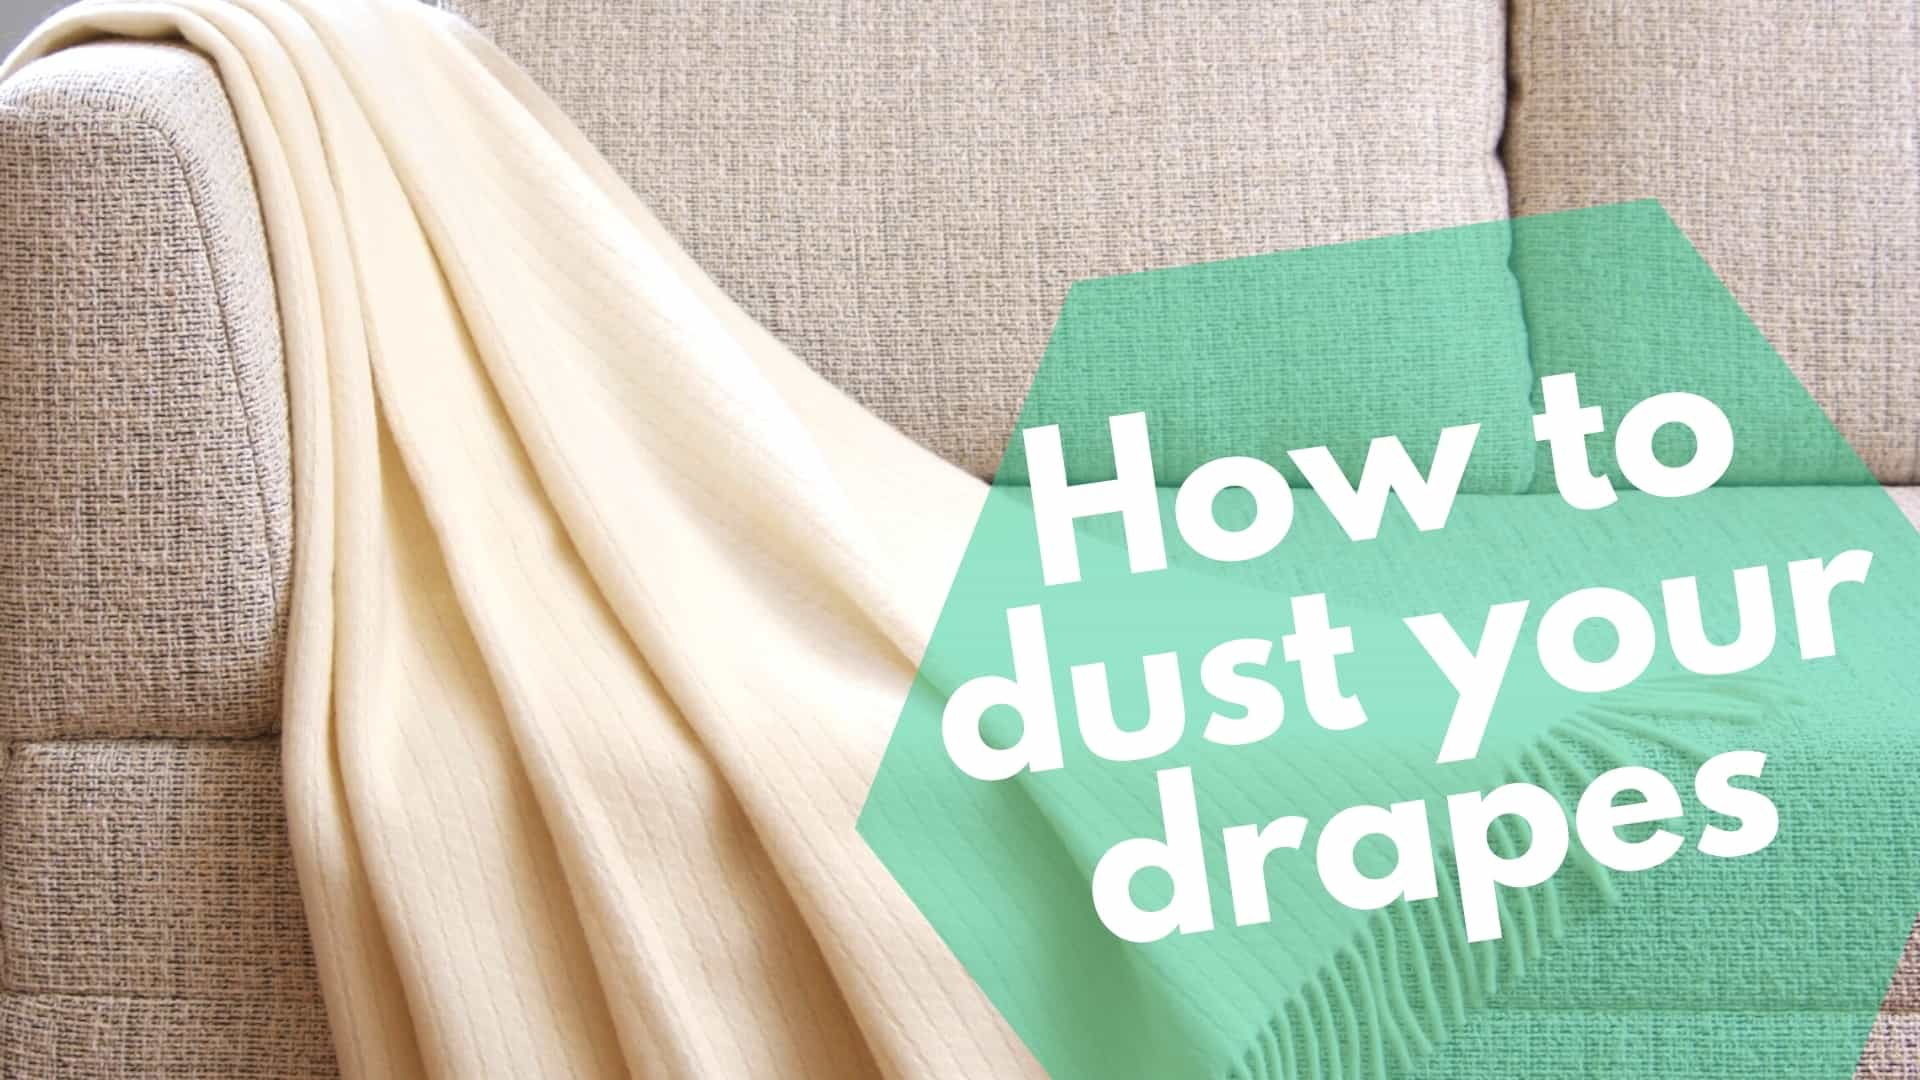 How to dust your drapes